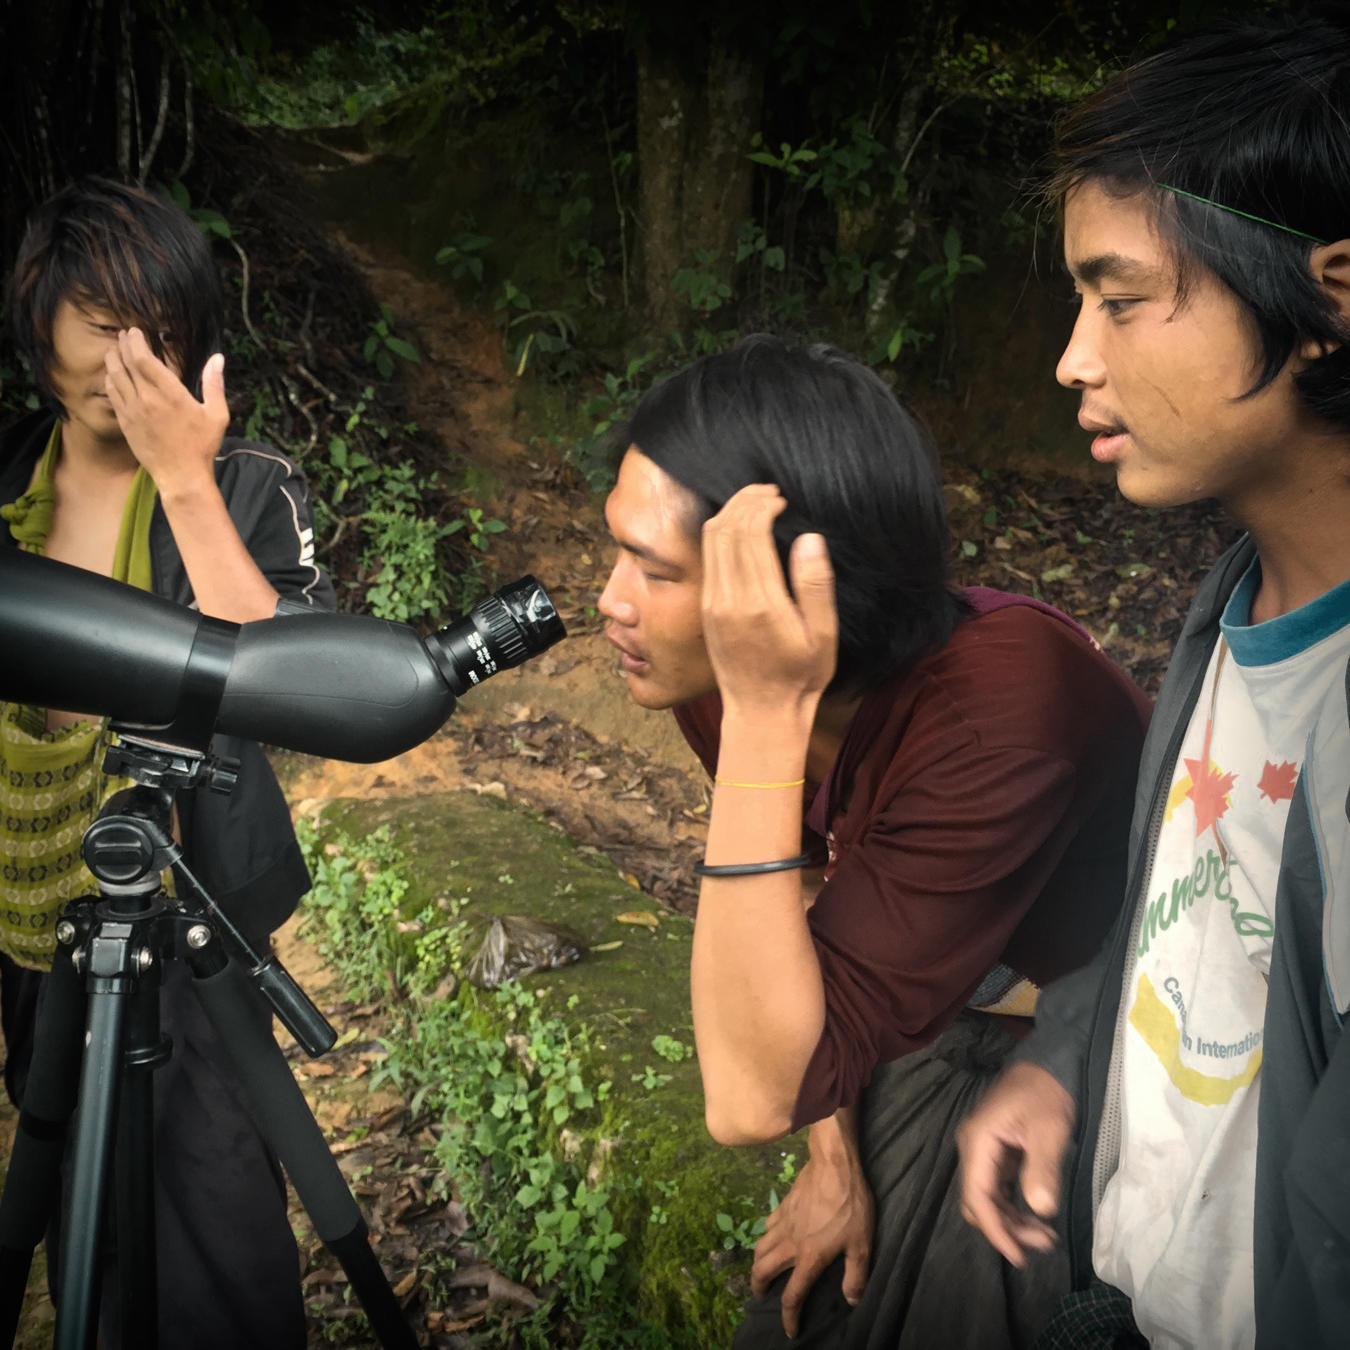 Curious locals take a look through Gideon's spotting scope. Noah Strycker